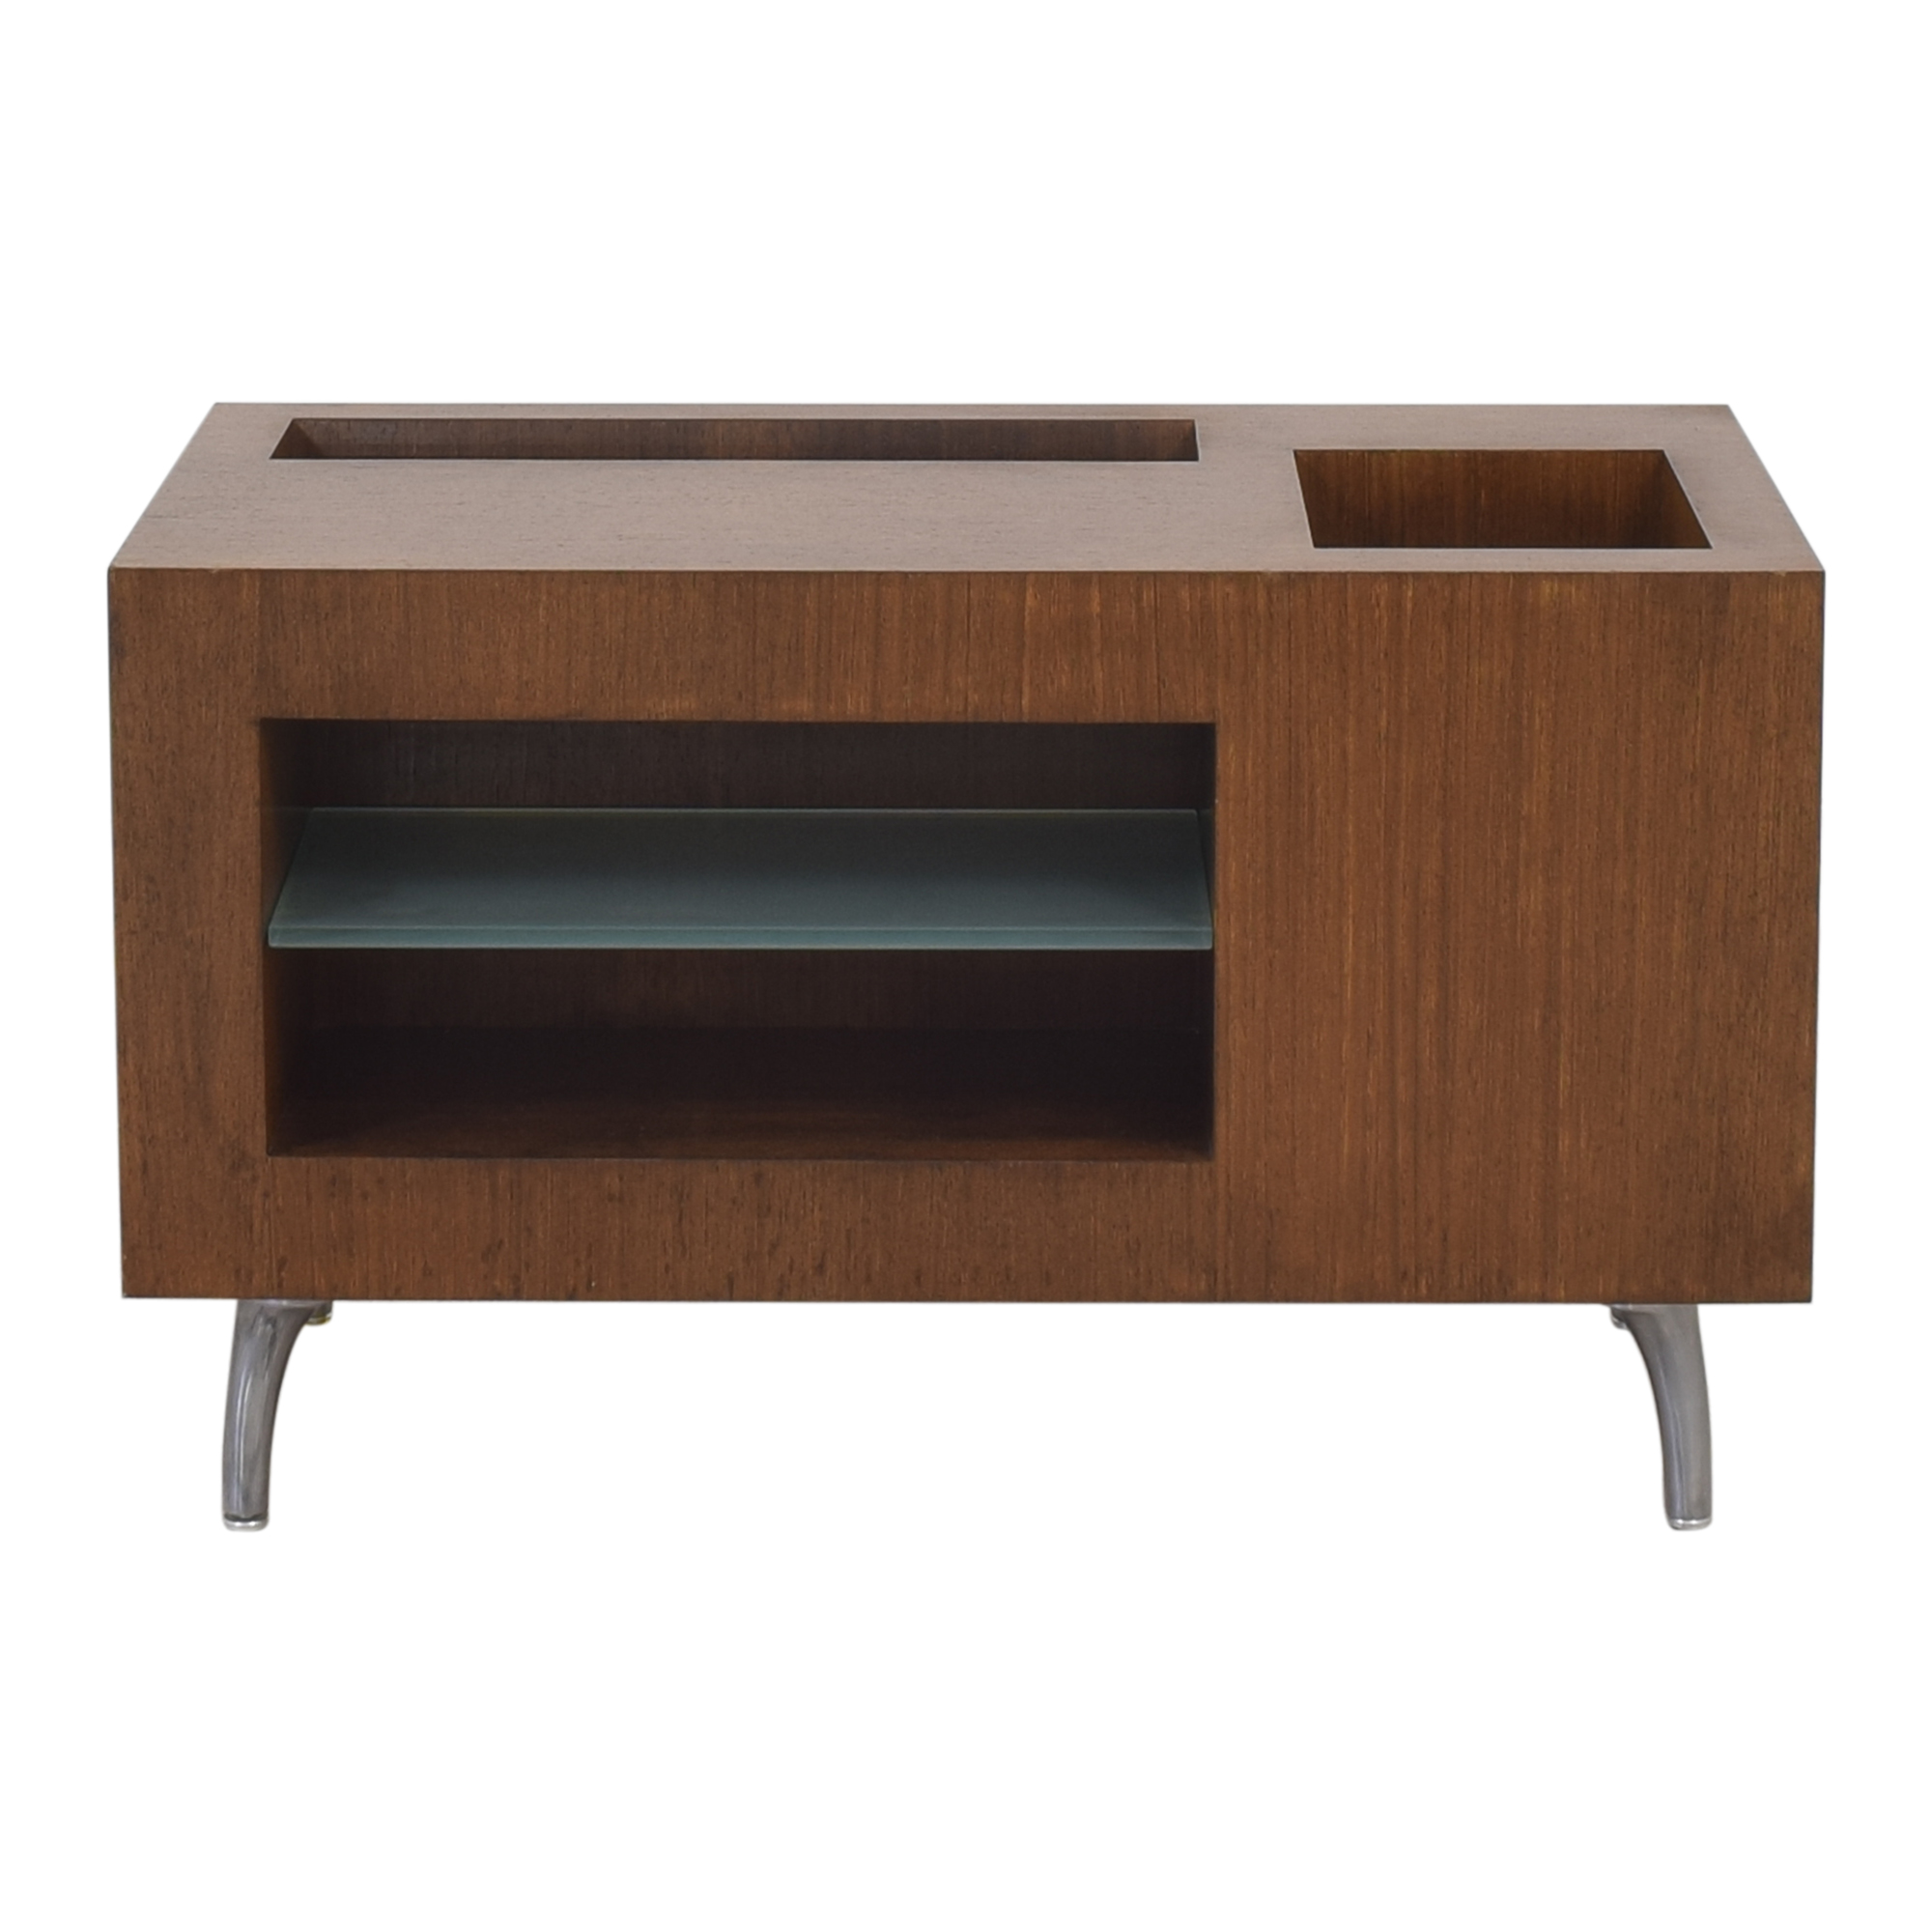 buy  Modern Style Coffee Table online